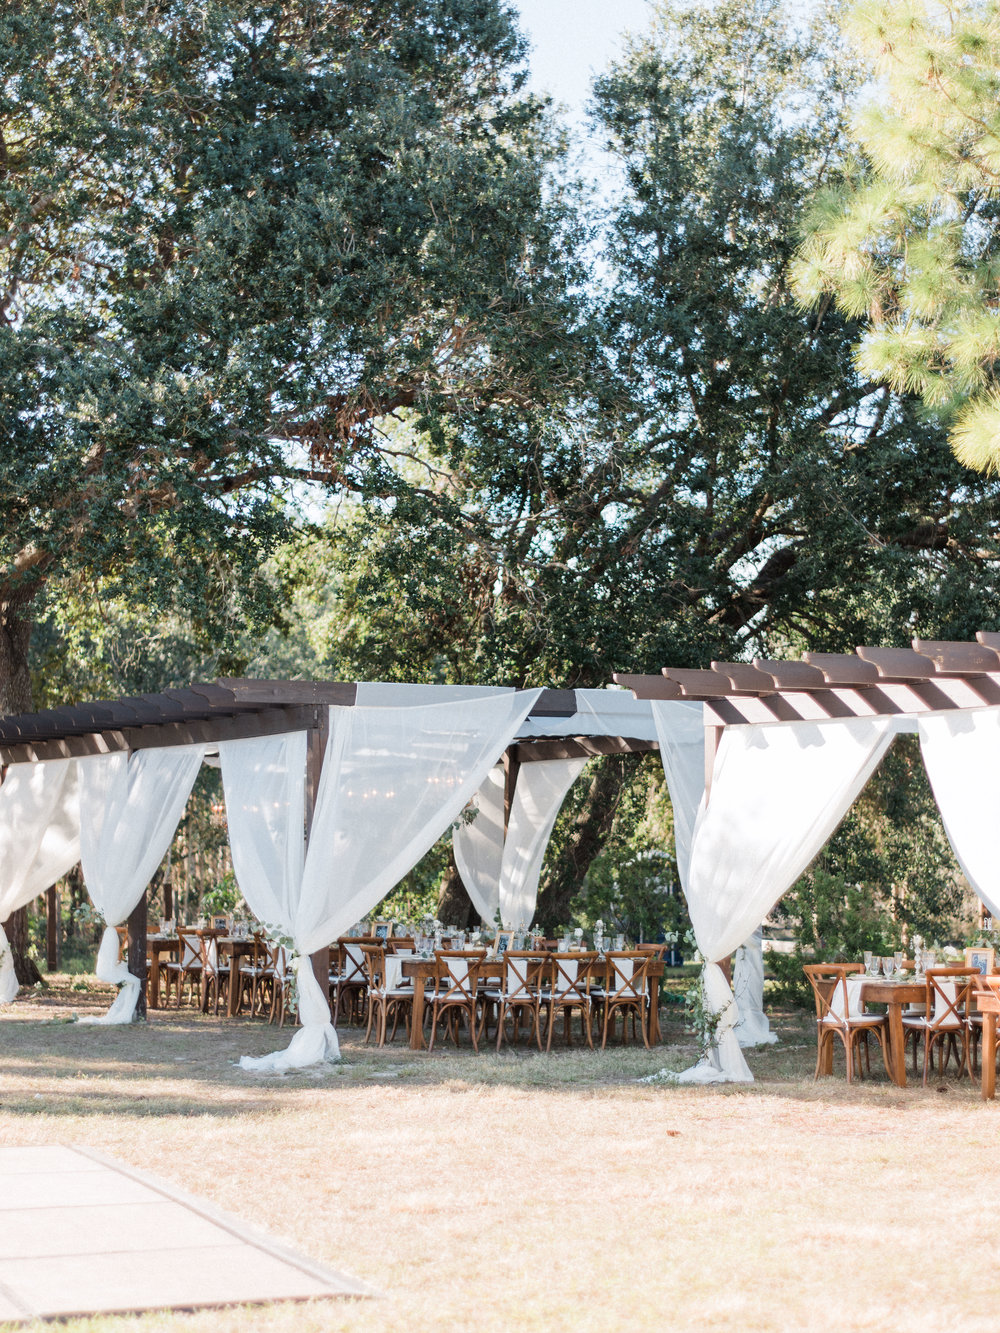 florida-wedding-fort-myers-la-casa-toscana-outdoor-ceremony-winter-wedding-brown-chairs-white-gazebo-planned-by-mostly-becky-weddings-traveling-wedding-planner-destination-wedding-lakeside-bridal-portraits-bride-groom-black-tie-tux-formal-wedding-outdoor-reception-verandas-tuscan-wedding